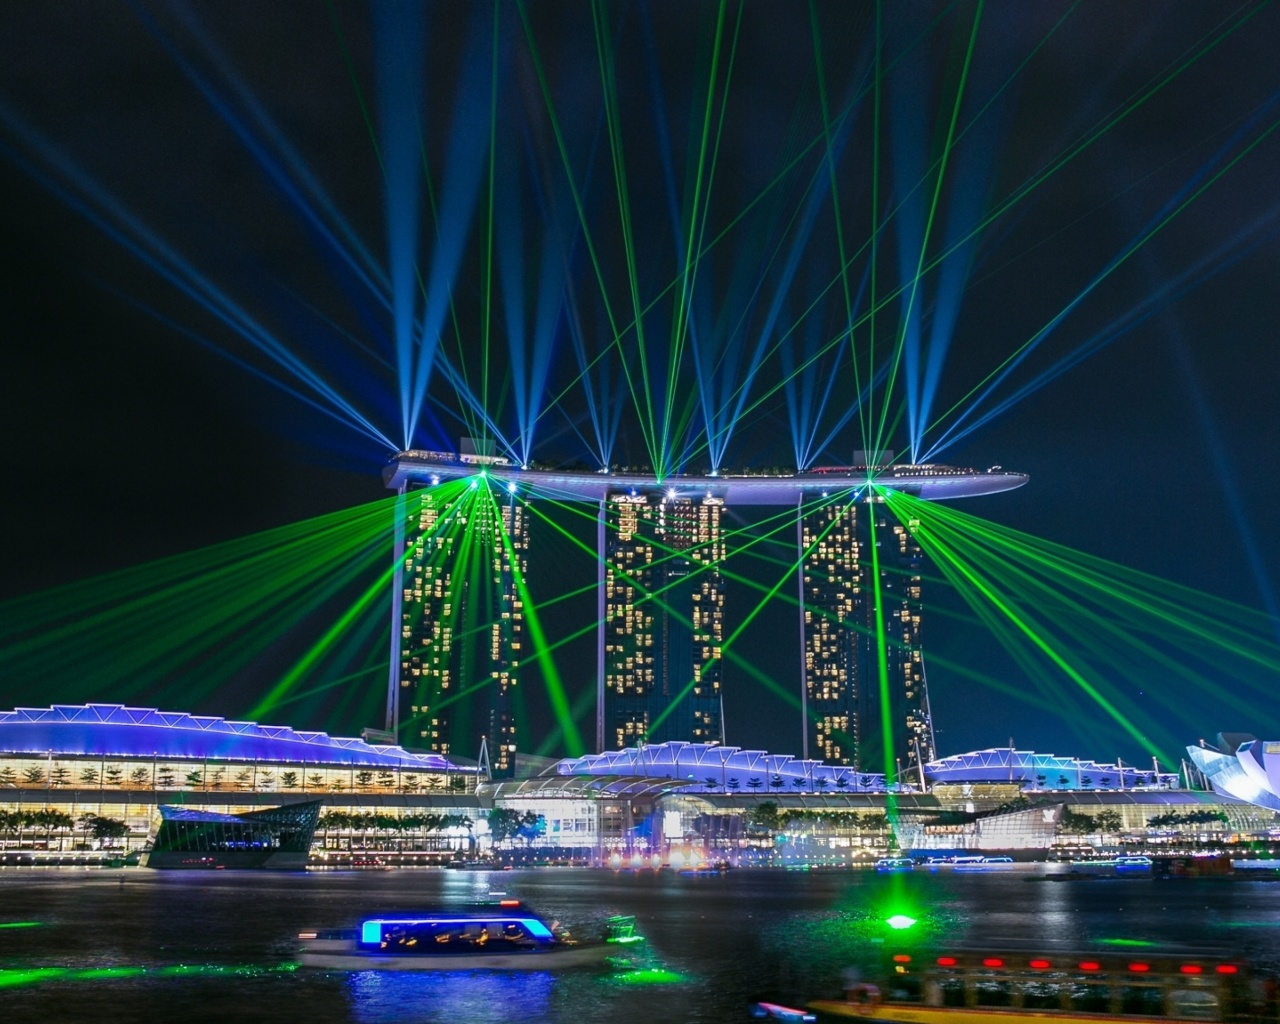 Das Laser show near Marina Bay Sands Hotel in Singapore Wallpaper 1280x1024